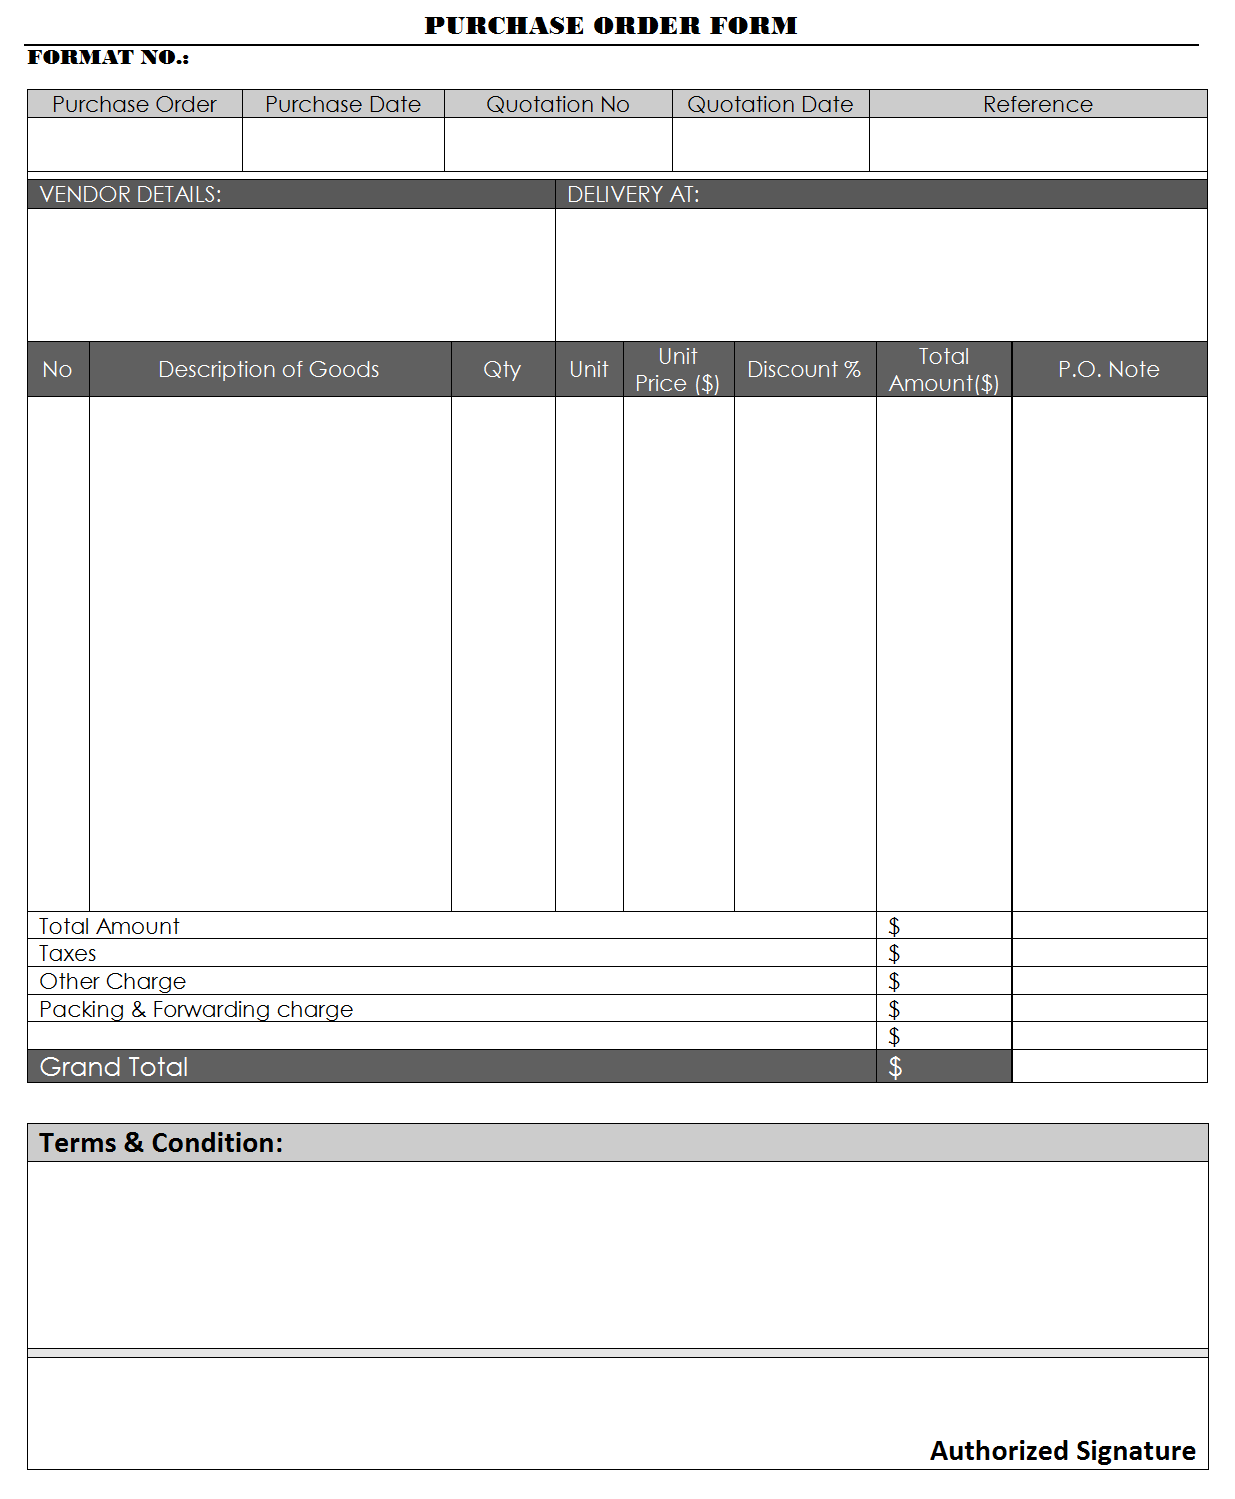 Purchase Order Form Format Format PG 1 ...  Purchase Order Formats